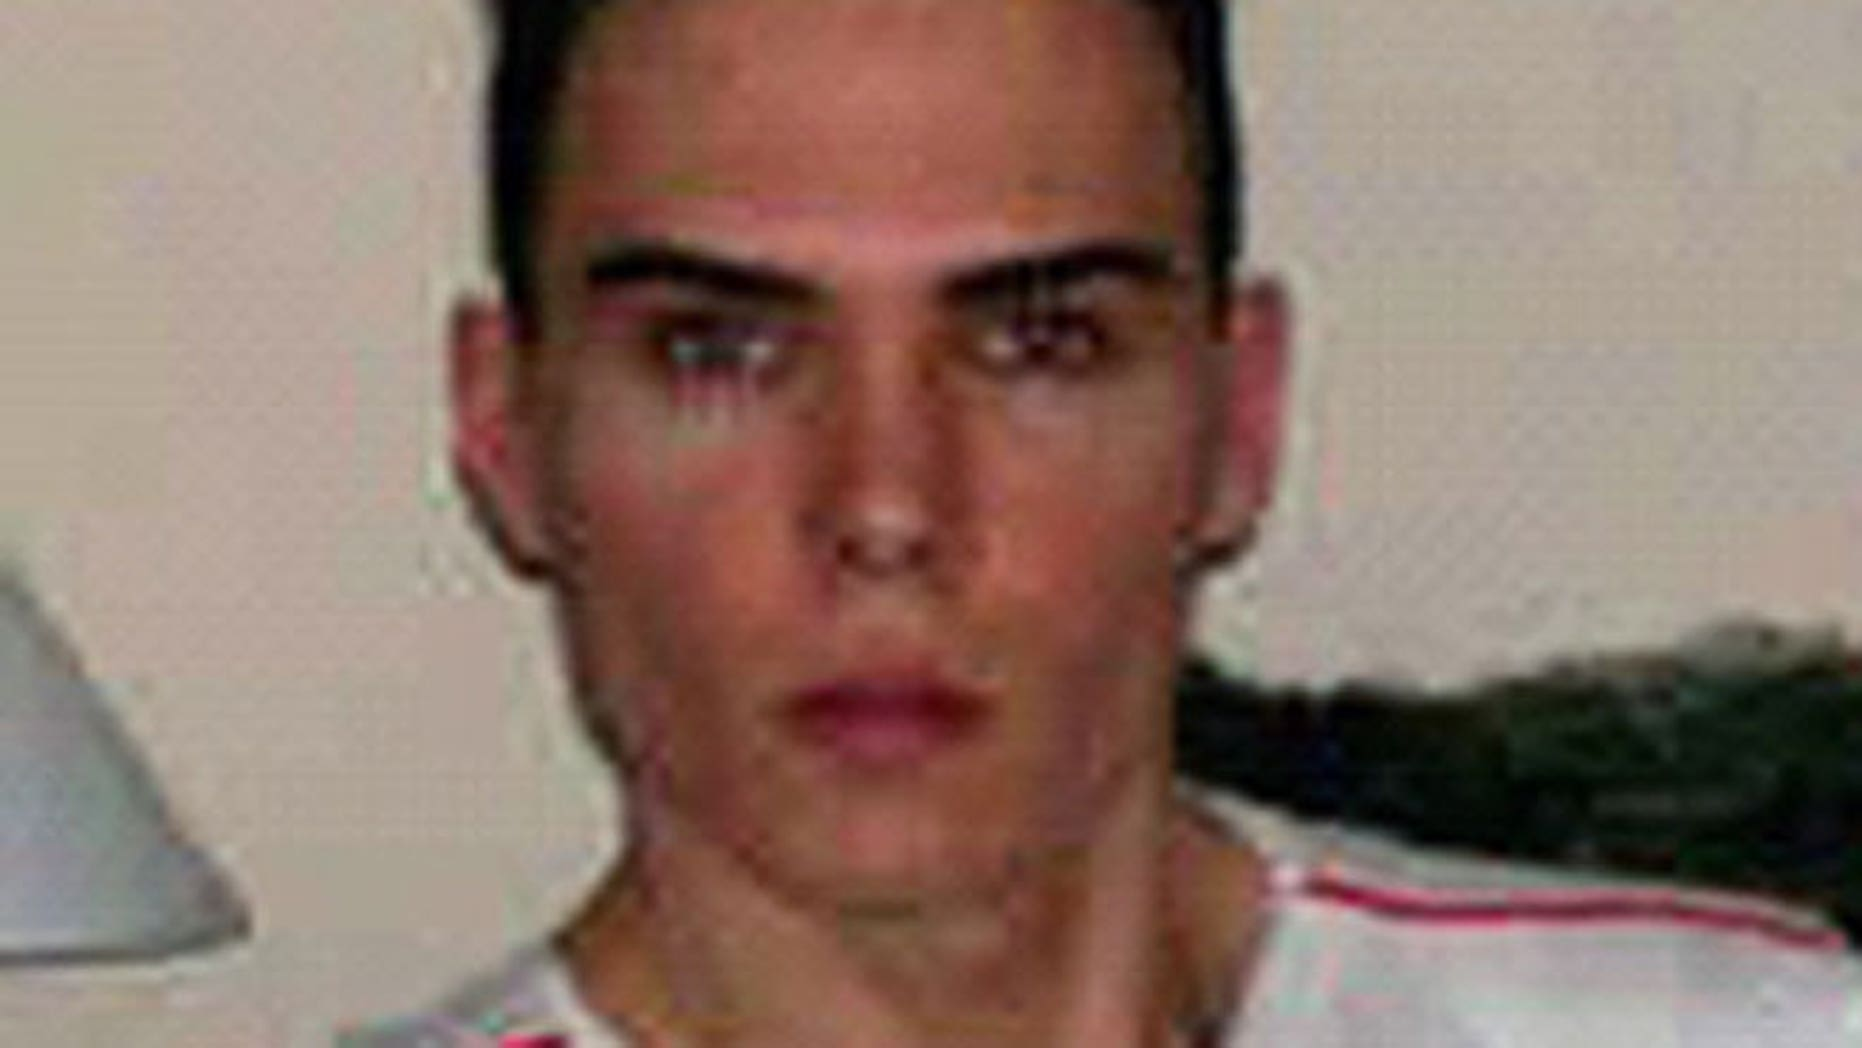 May 30, 2012: This undated photo provided by City of Montreal Police Service media relations shows Luka Rocco Magnotta, 29, who is wanted for homicide.